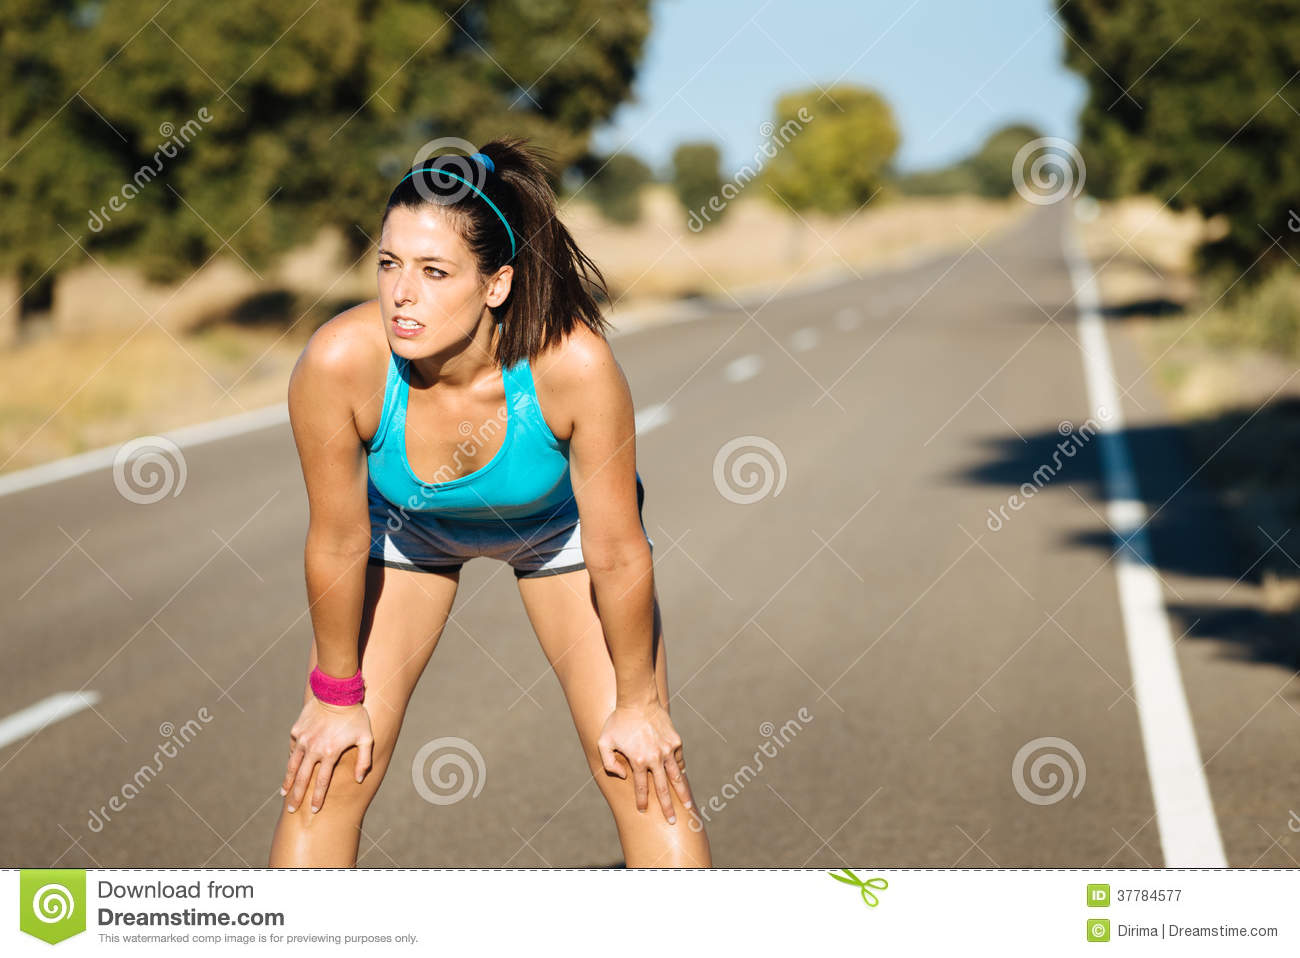 Thought differently, sexy hot runner girl running really